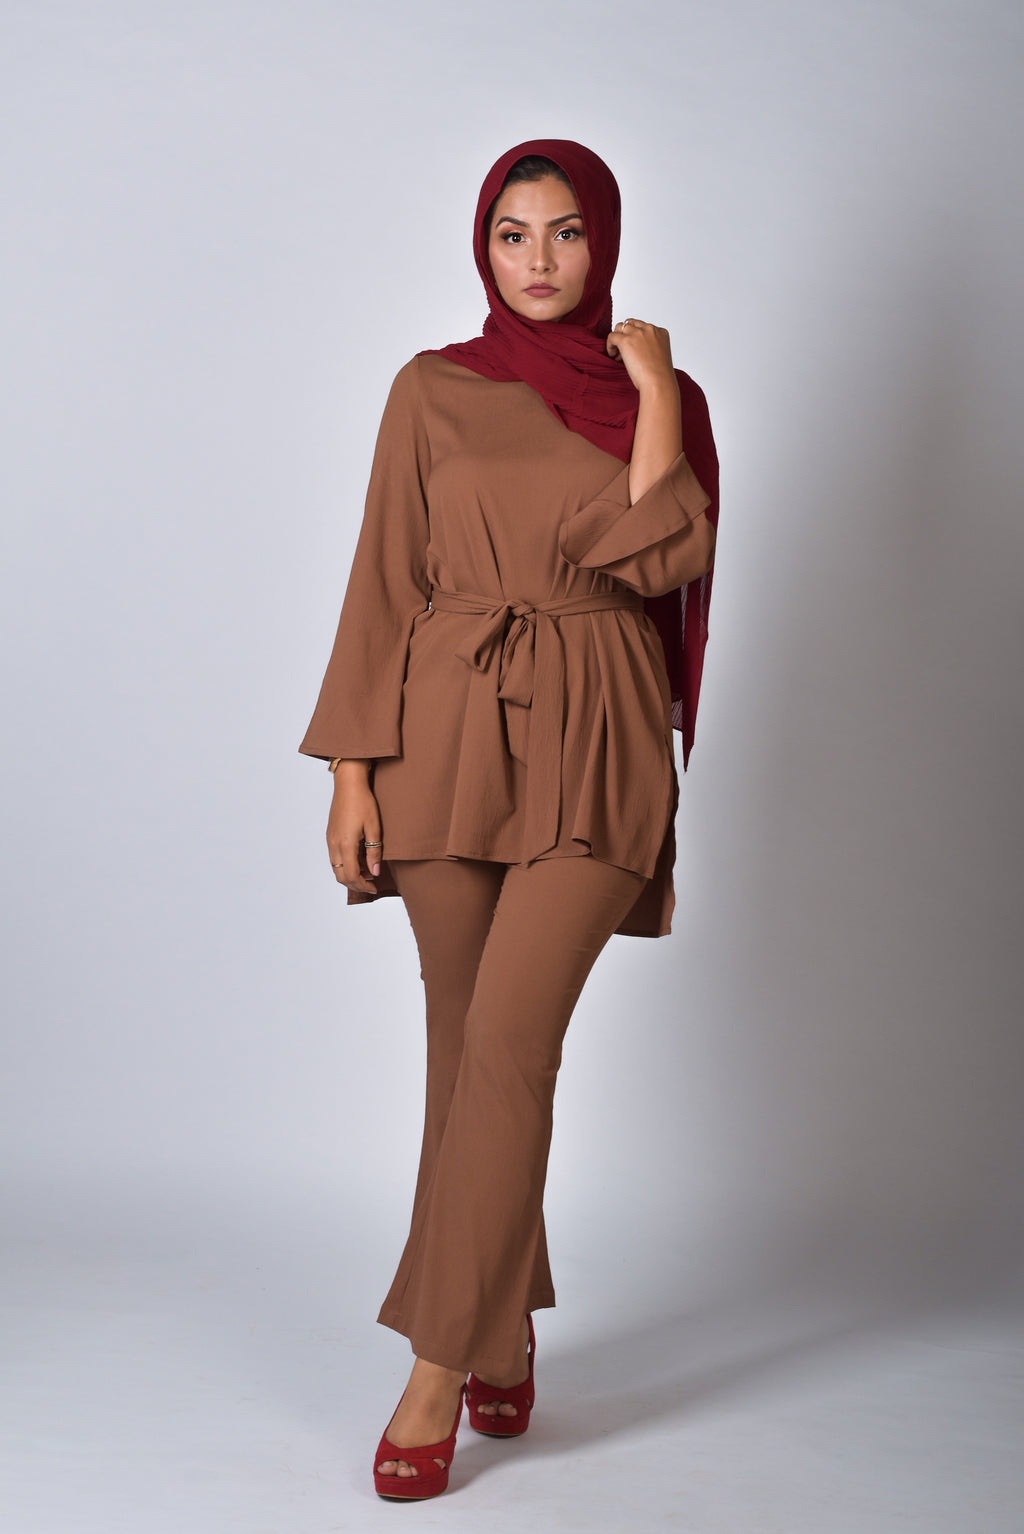 nabeeha fakih wearing brown top and pant two piece set , stylish co ords set